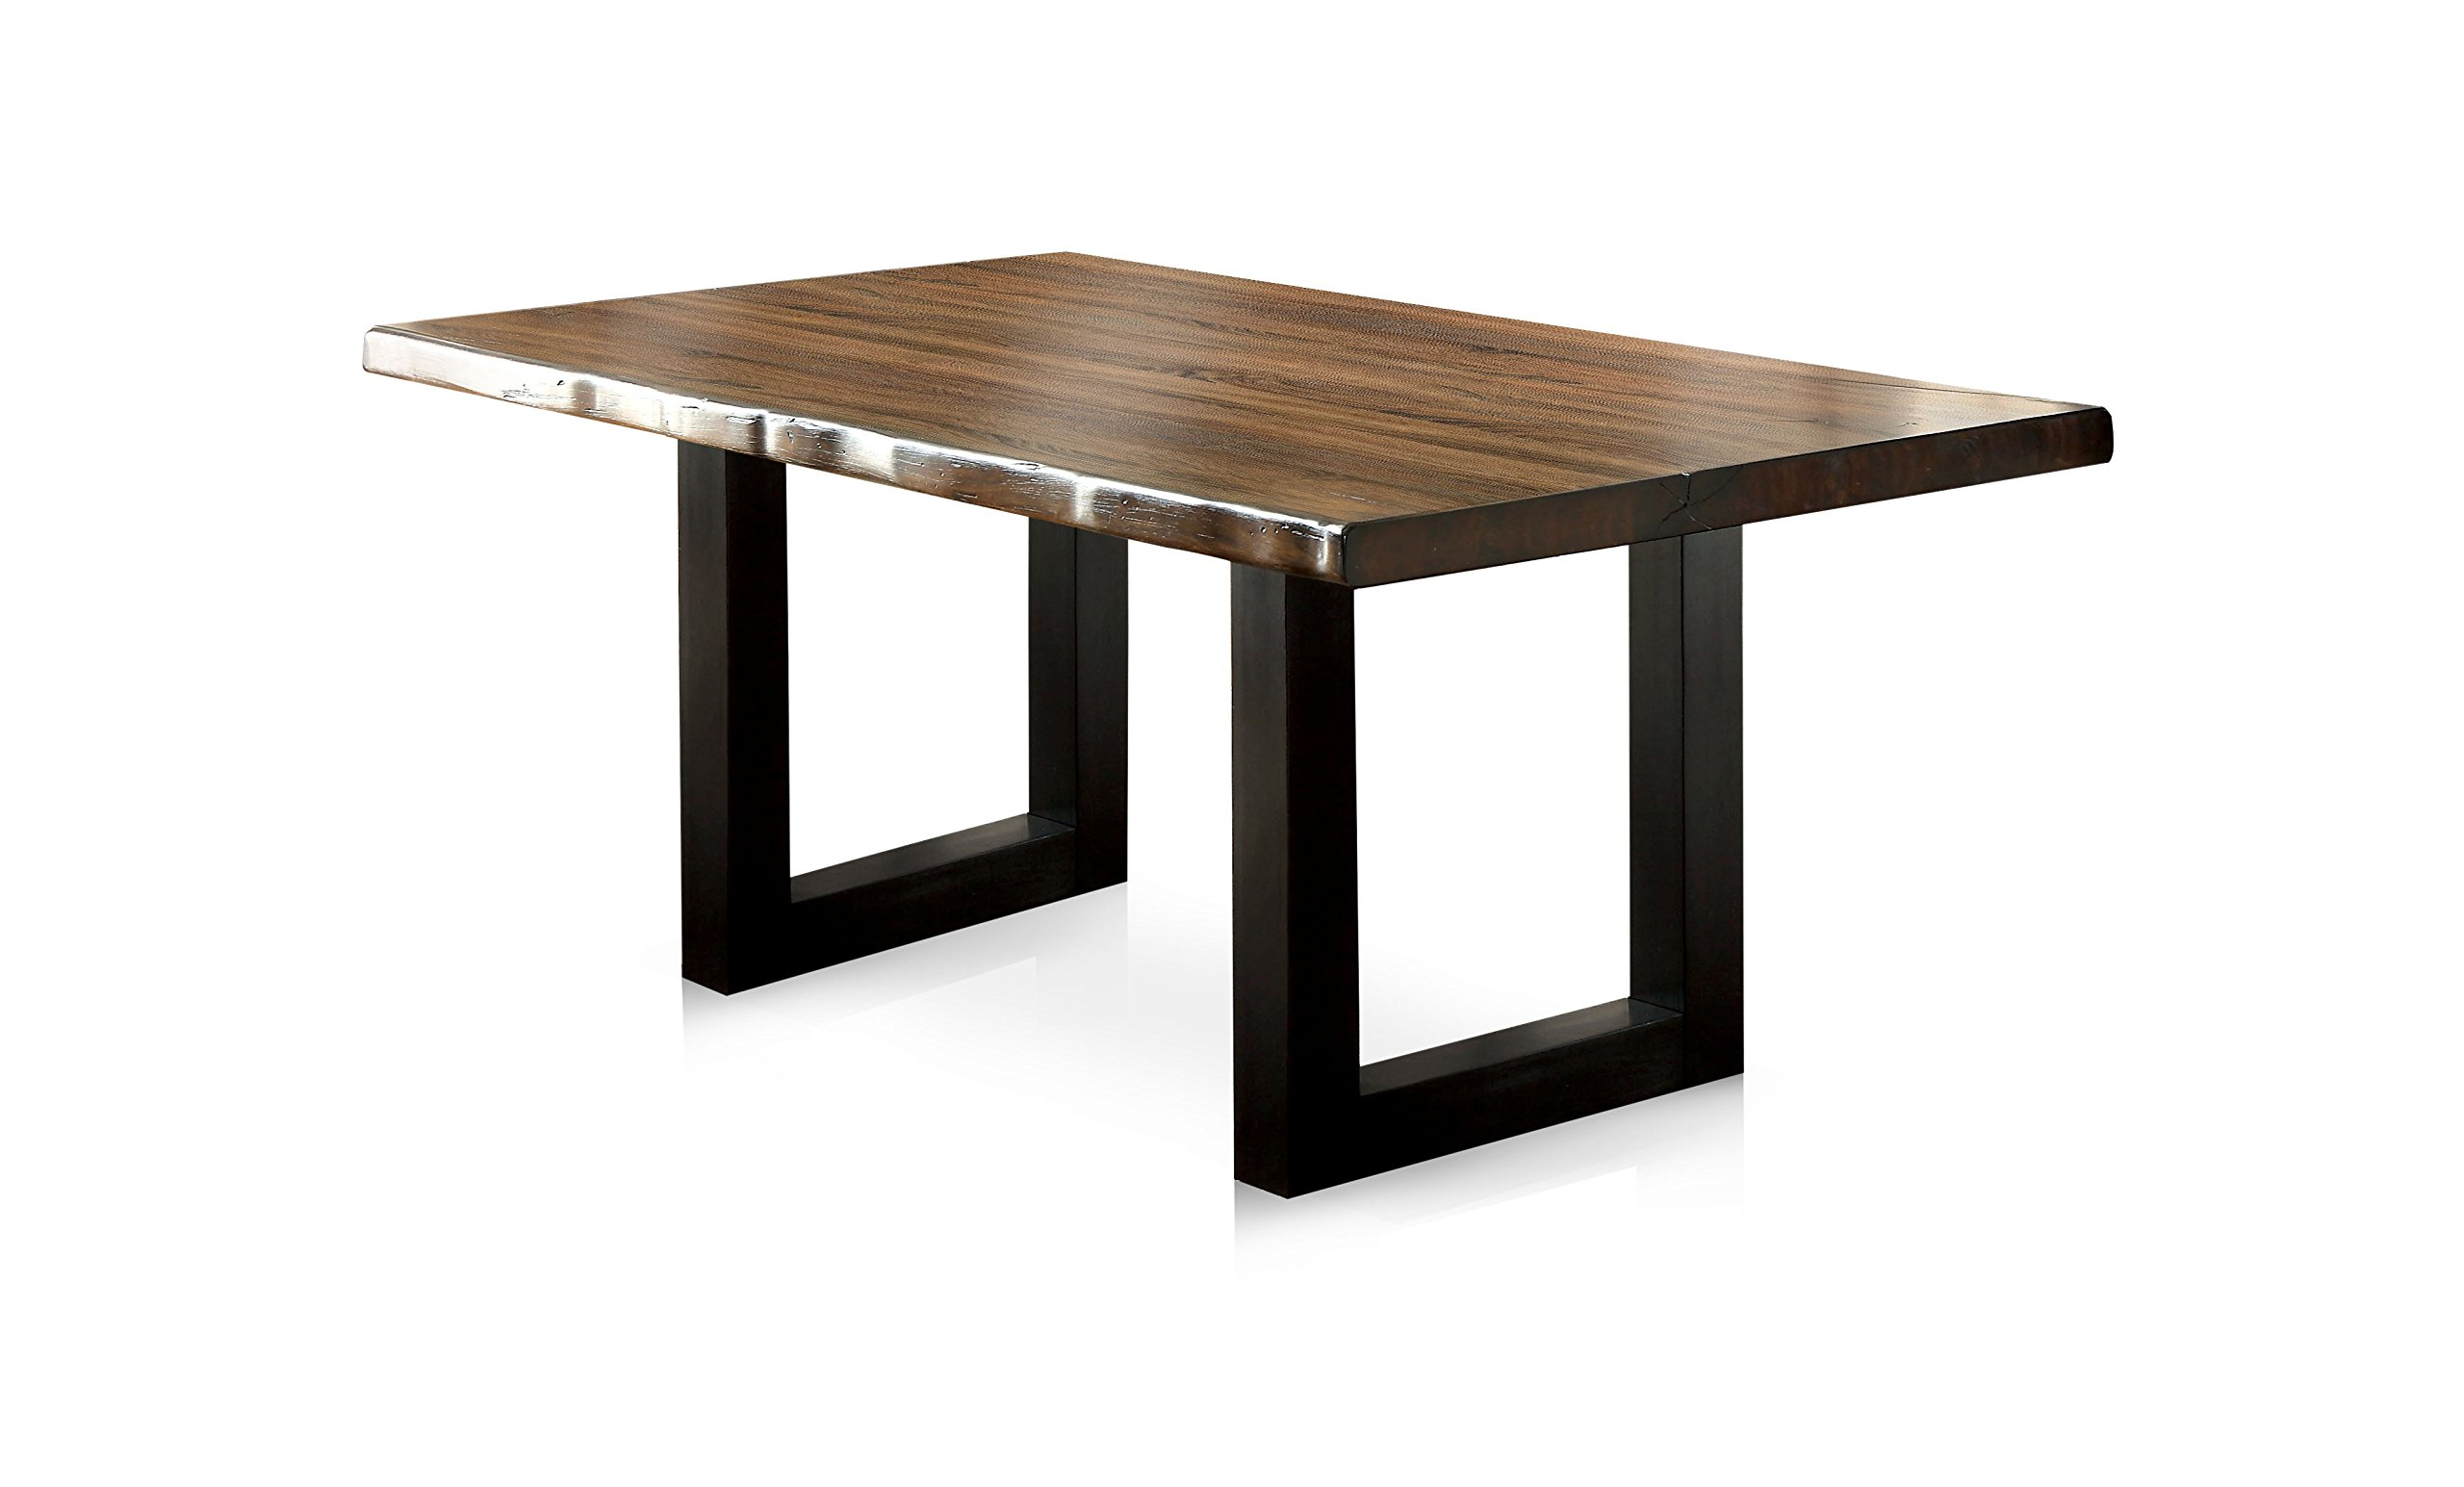 HOMES: Inside + Out Tobacco Oak Durrett Contemporary Dining Table by HOMES: Inside + Out